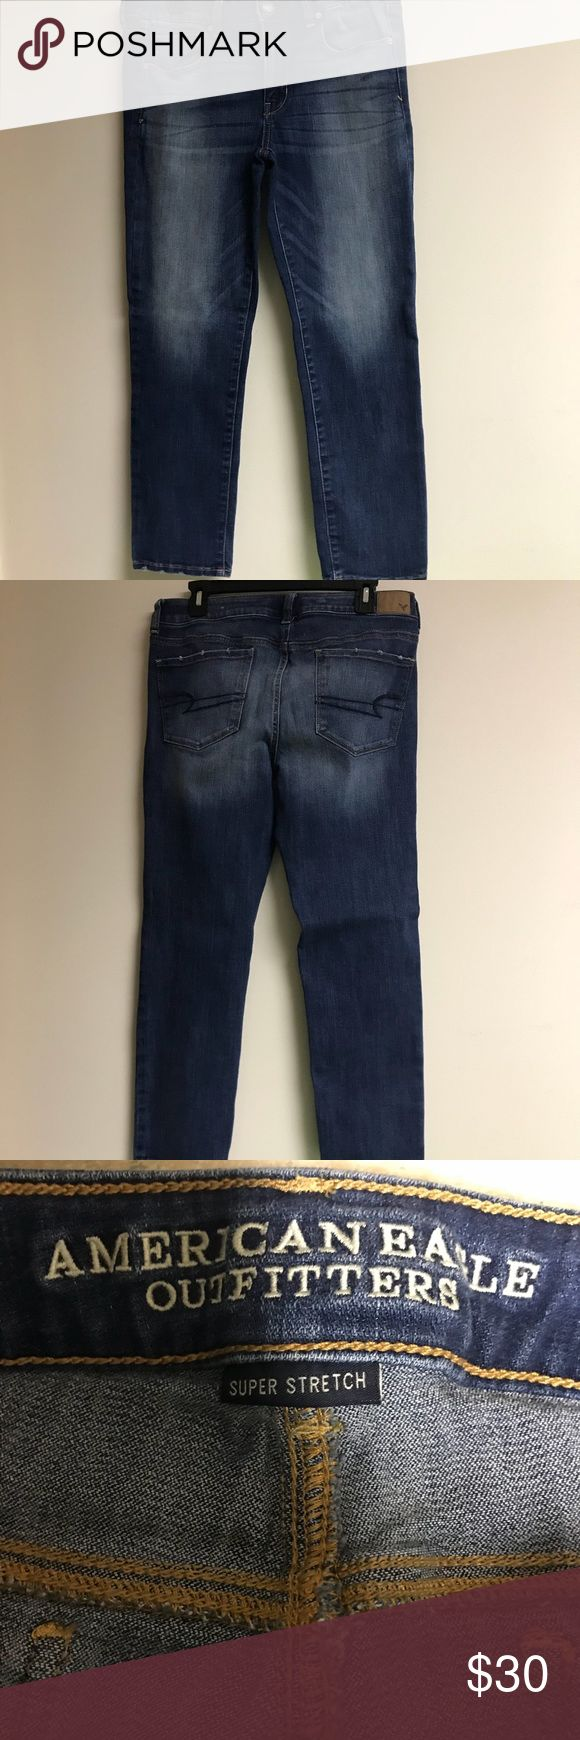 American Eagle 12 Short Super Stretch Skinny Jeans Brand new without tags. Washed but never worn! Excellent condition. No holes, no stains, no flaws of any kind. Check my other items for bundles to save on shipping! Make a bundle of several items and only pay shipping once! Comes from a smoke-free home. I ship all items within 24 hours! I'll be listing over 100+ items today, so keep checking back for new listings! American Eagle Outfitters Jeans Skinny